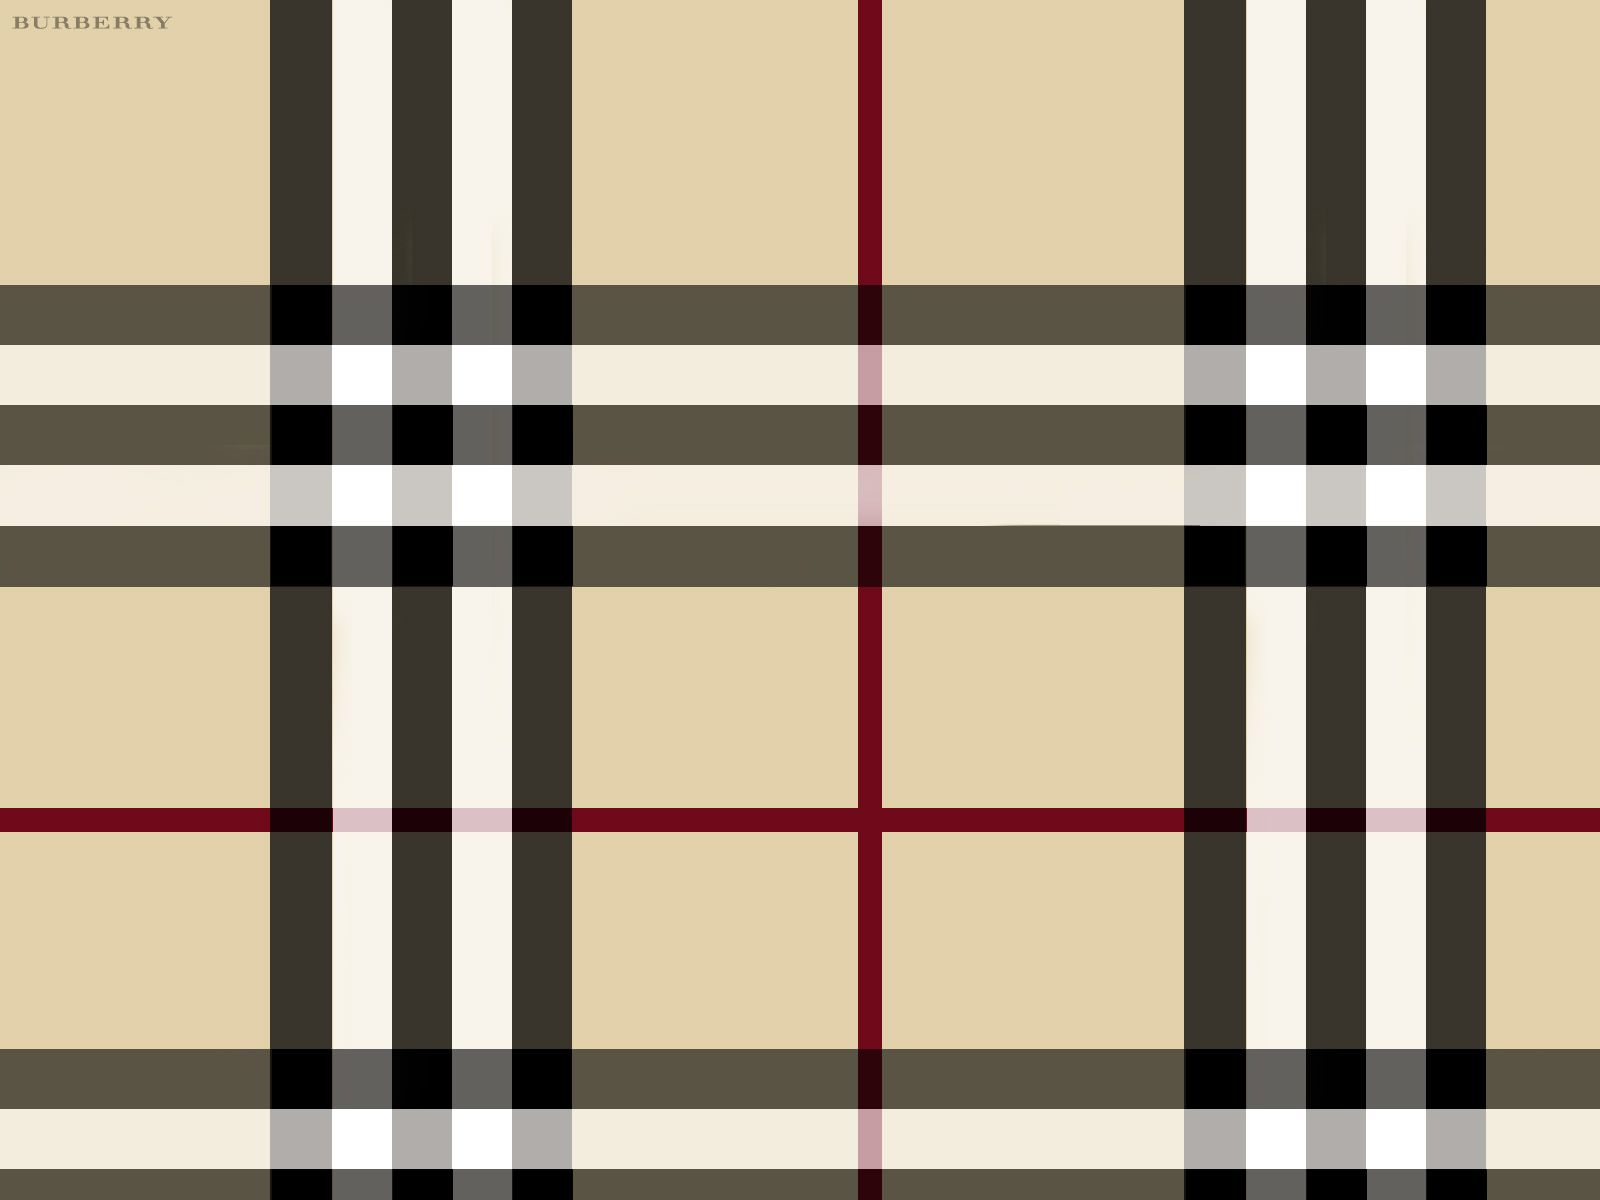 burberry plaid Burberry Plaid Pattern New Bedroom